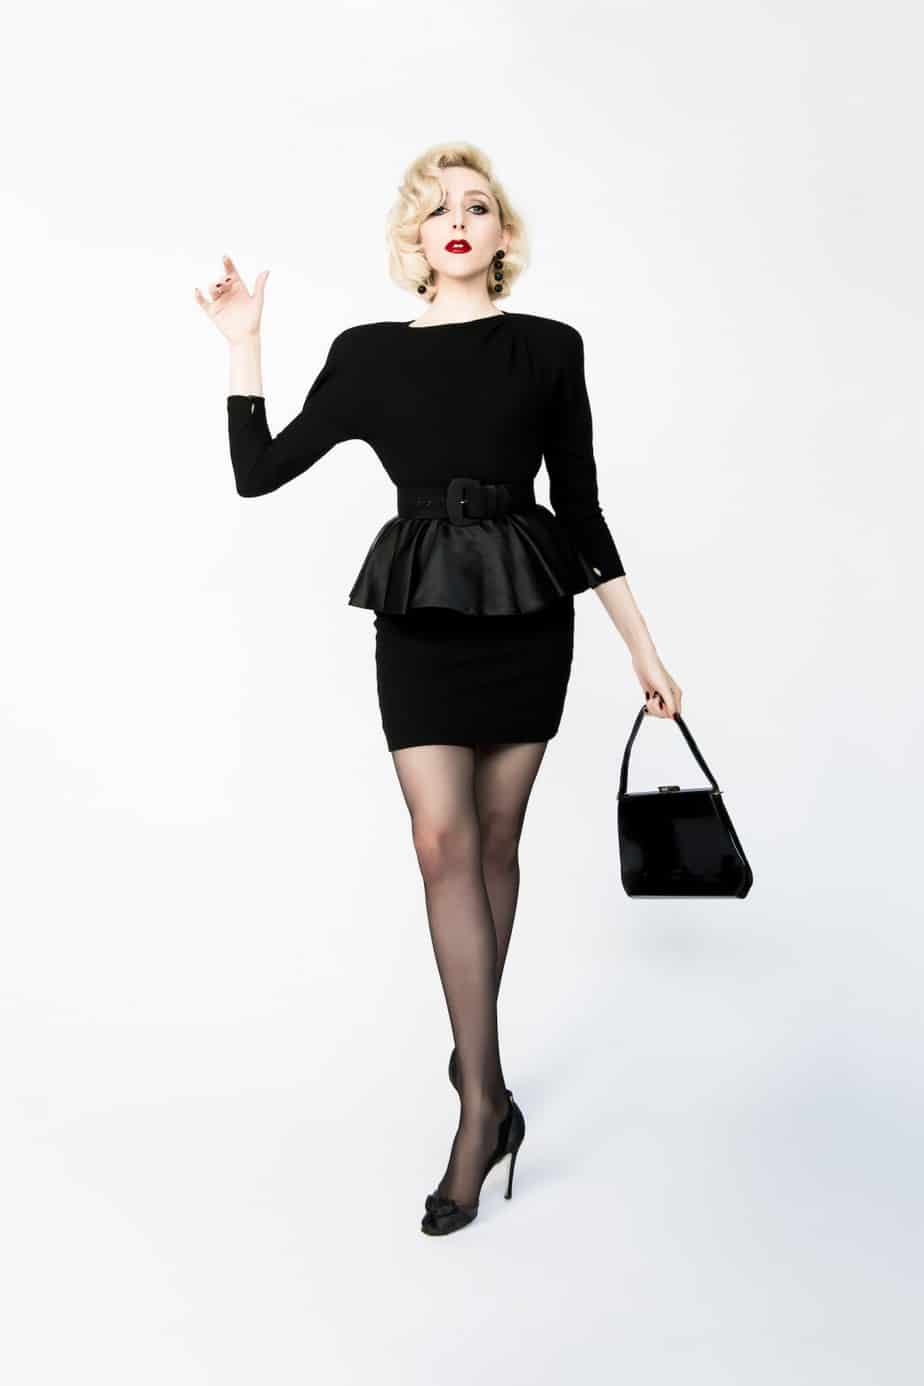 Now 10 little black dresses for - How Do Modern Fashion Designers Create New Styles Find Out For Yourself